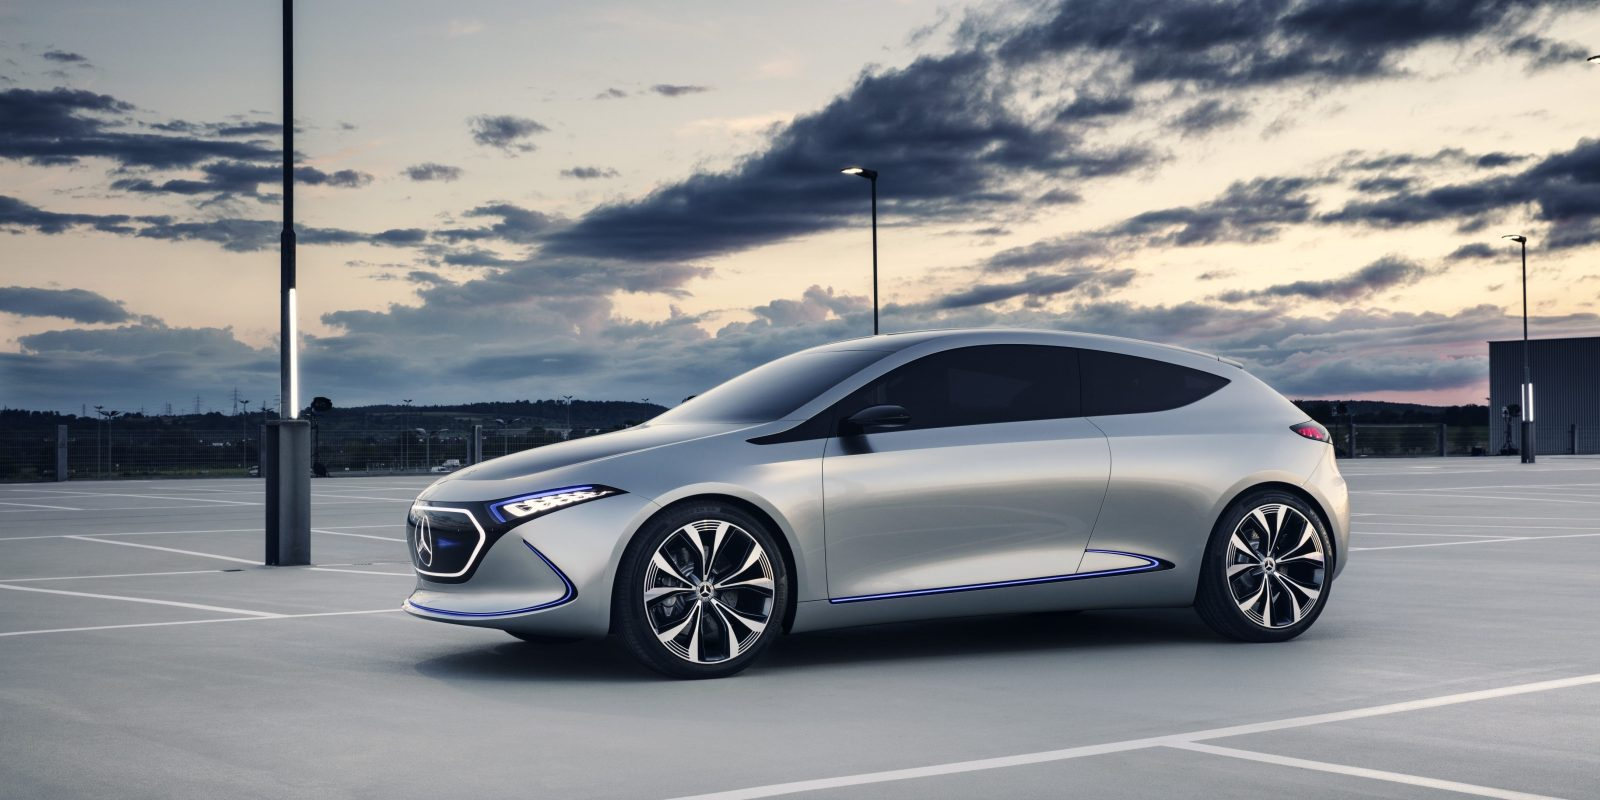 Mercedes Benz Invests 600 Million To Produce New Compact Electric Car At Factory In France